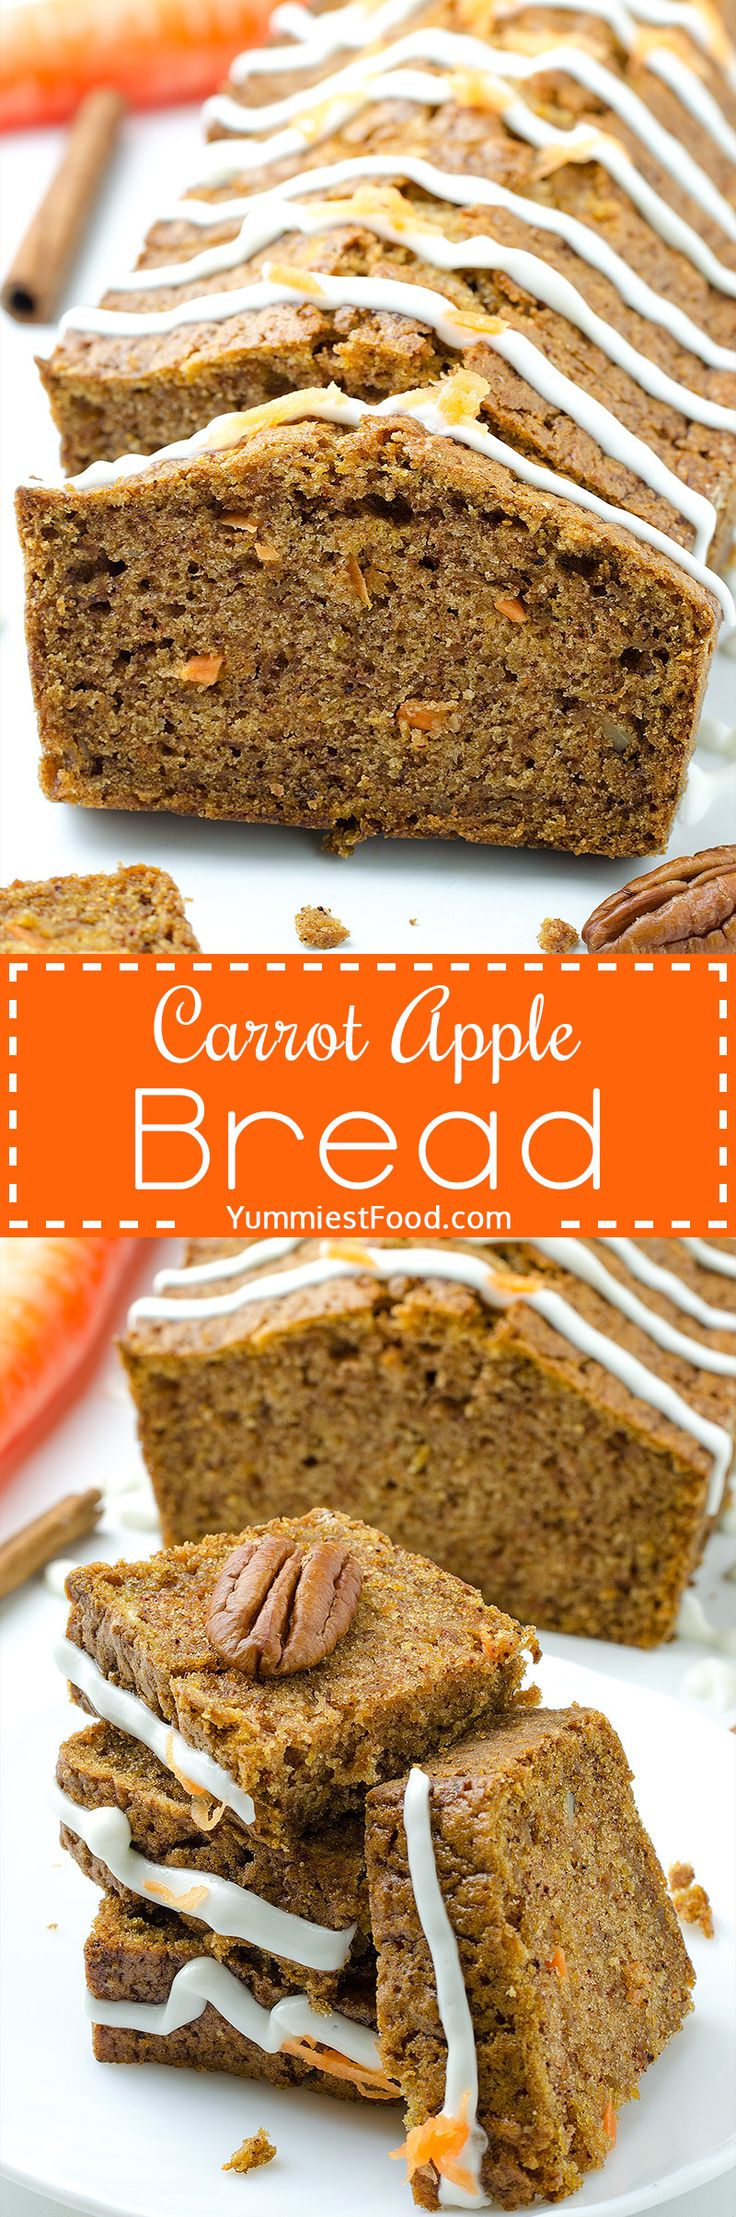 Carrot Apple Bread - yummy and very quick bread! Perfect way to start your day! Carrot Apple Bread is ideal choice for healthy breakfast! Super Carrot and Apple combination!